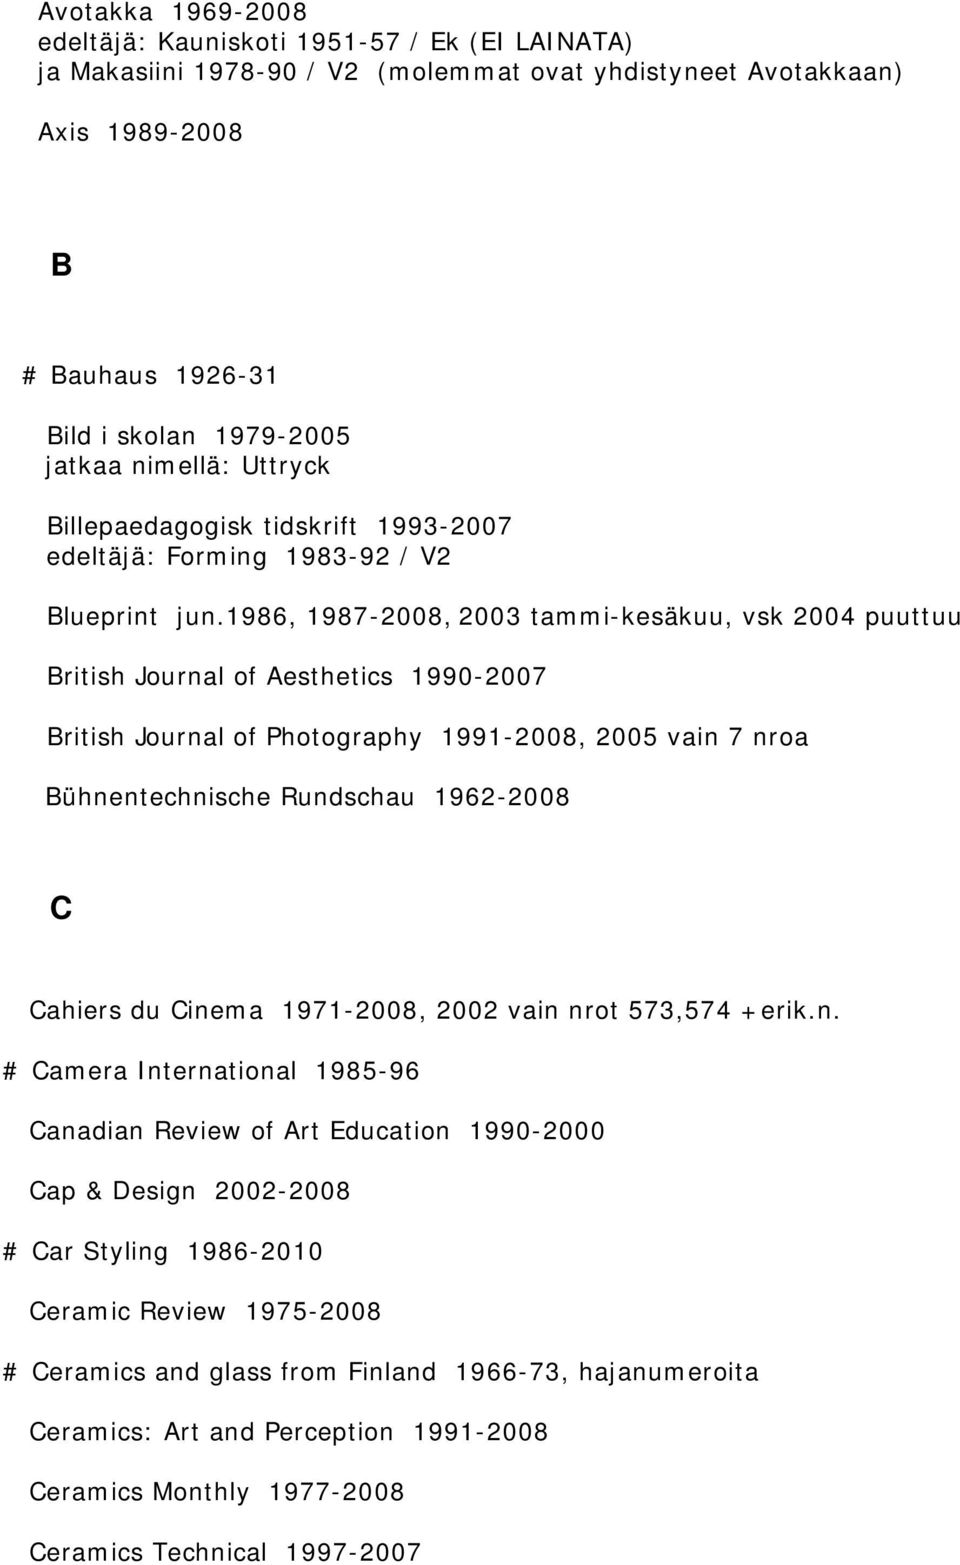 1986, 1987-2008, 2003 tammi-kesäkuu, vsk 2004 puuttuu British Journal of Aesthetics 1990-2007 British Journal of Photography 1991-2008, 2005 vain 7 nroa Bühnentechnische Rundschau 1962-2008 C Cahiers